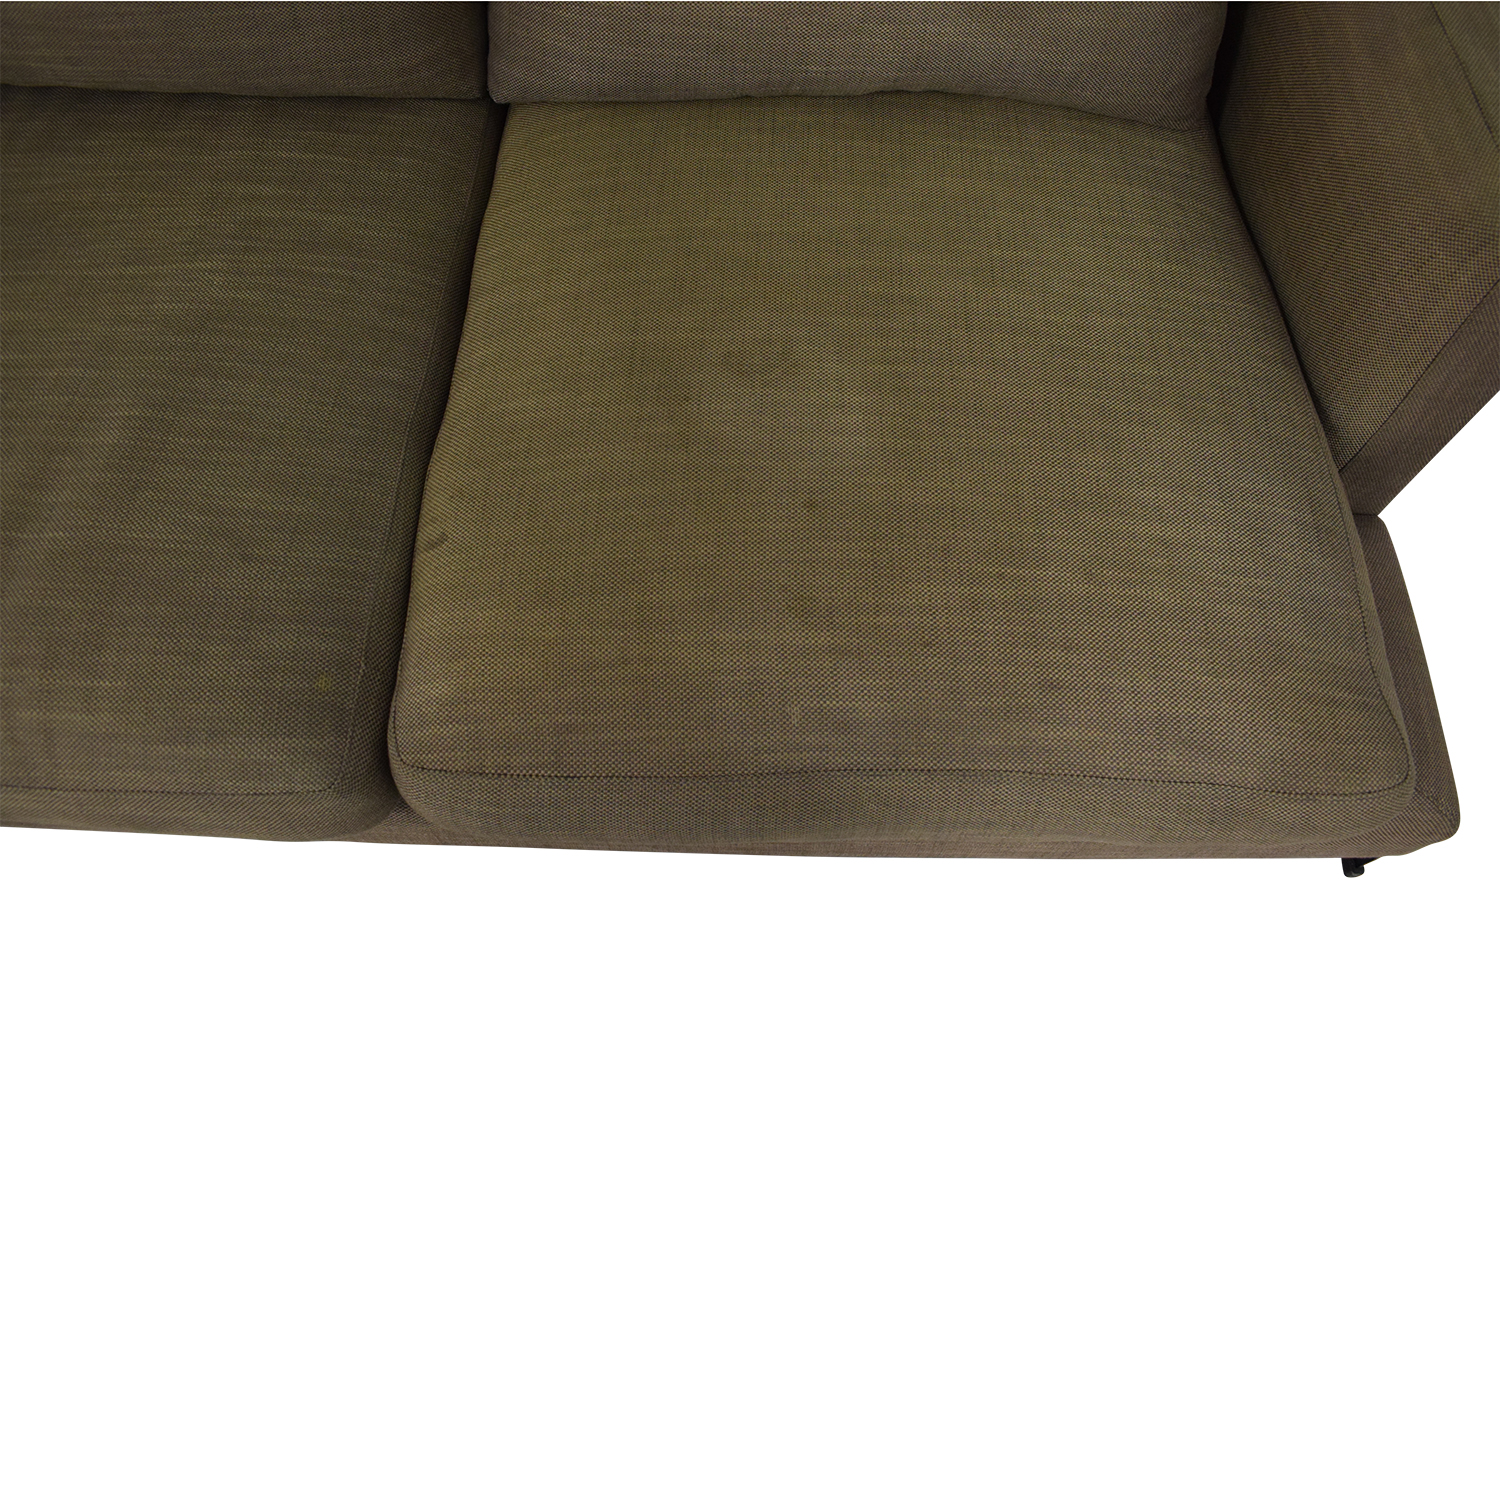 Camerich Camerich Lazy Time Sectional Sofa on sale